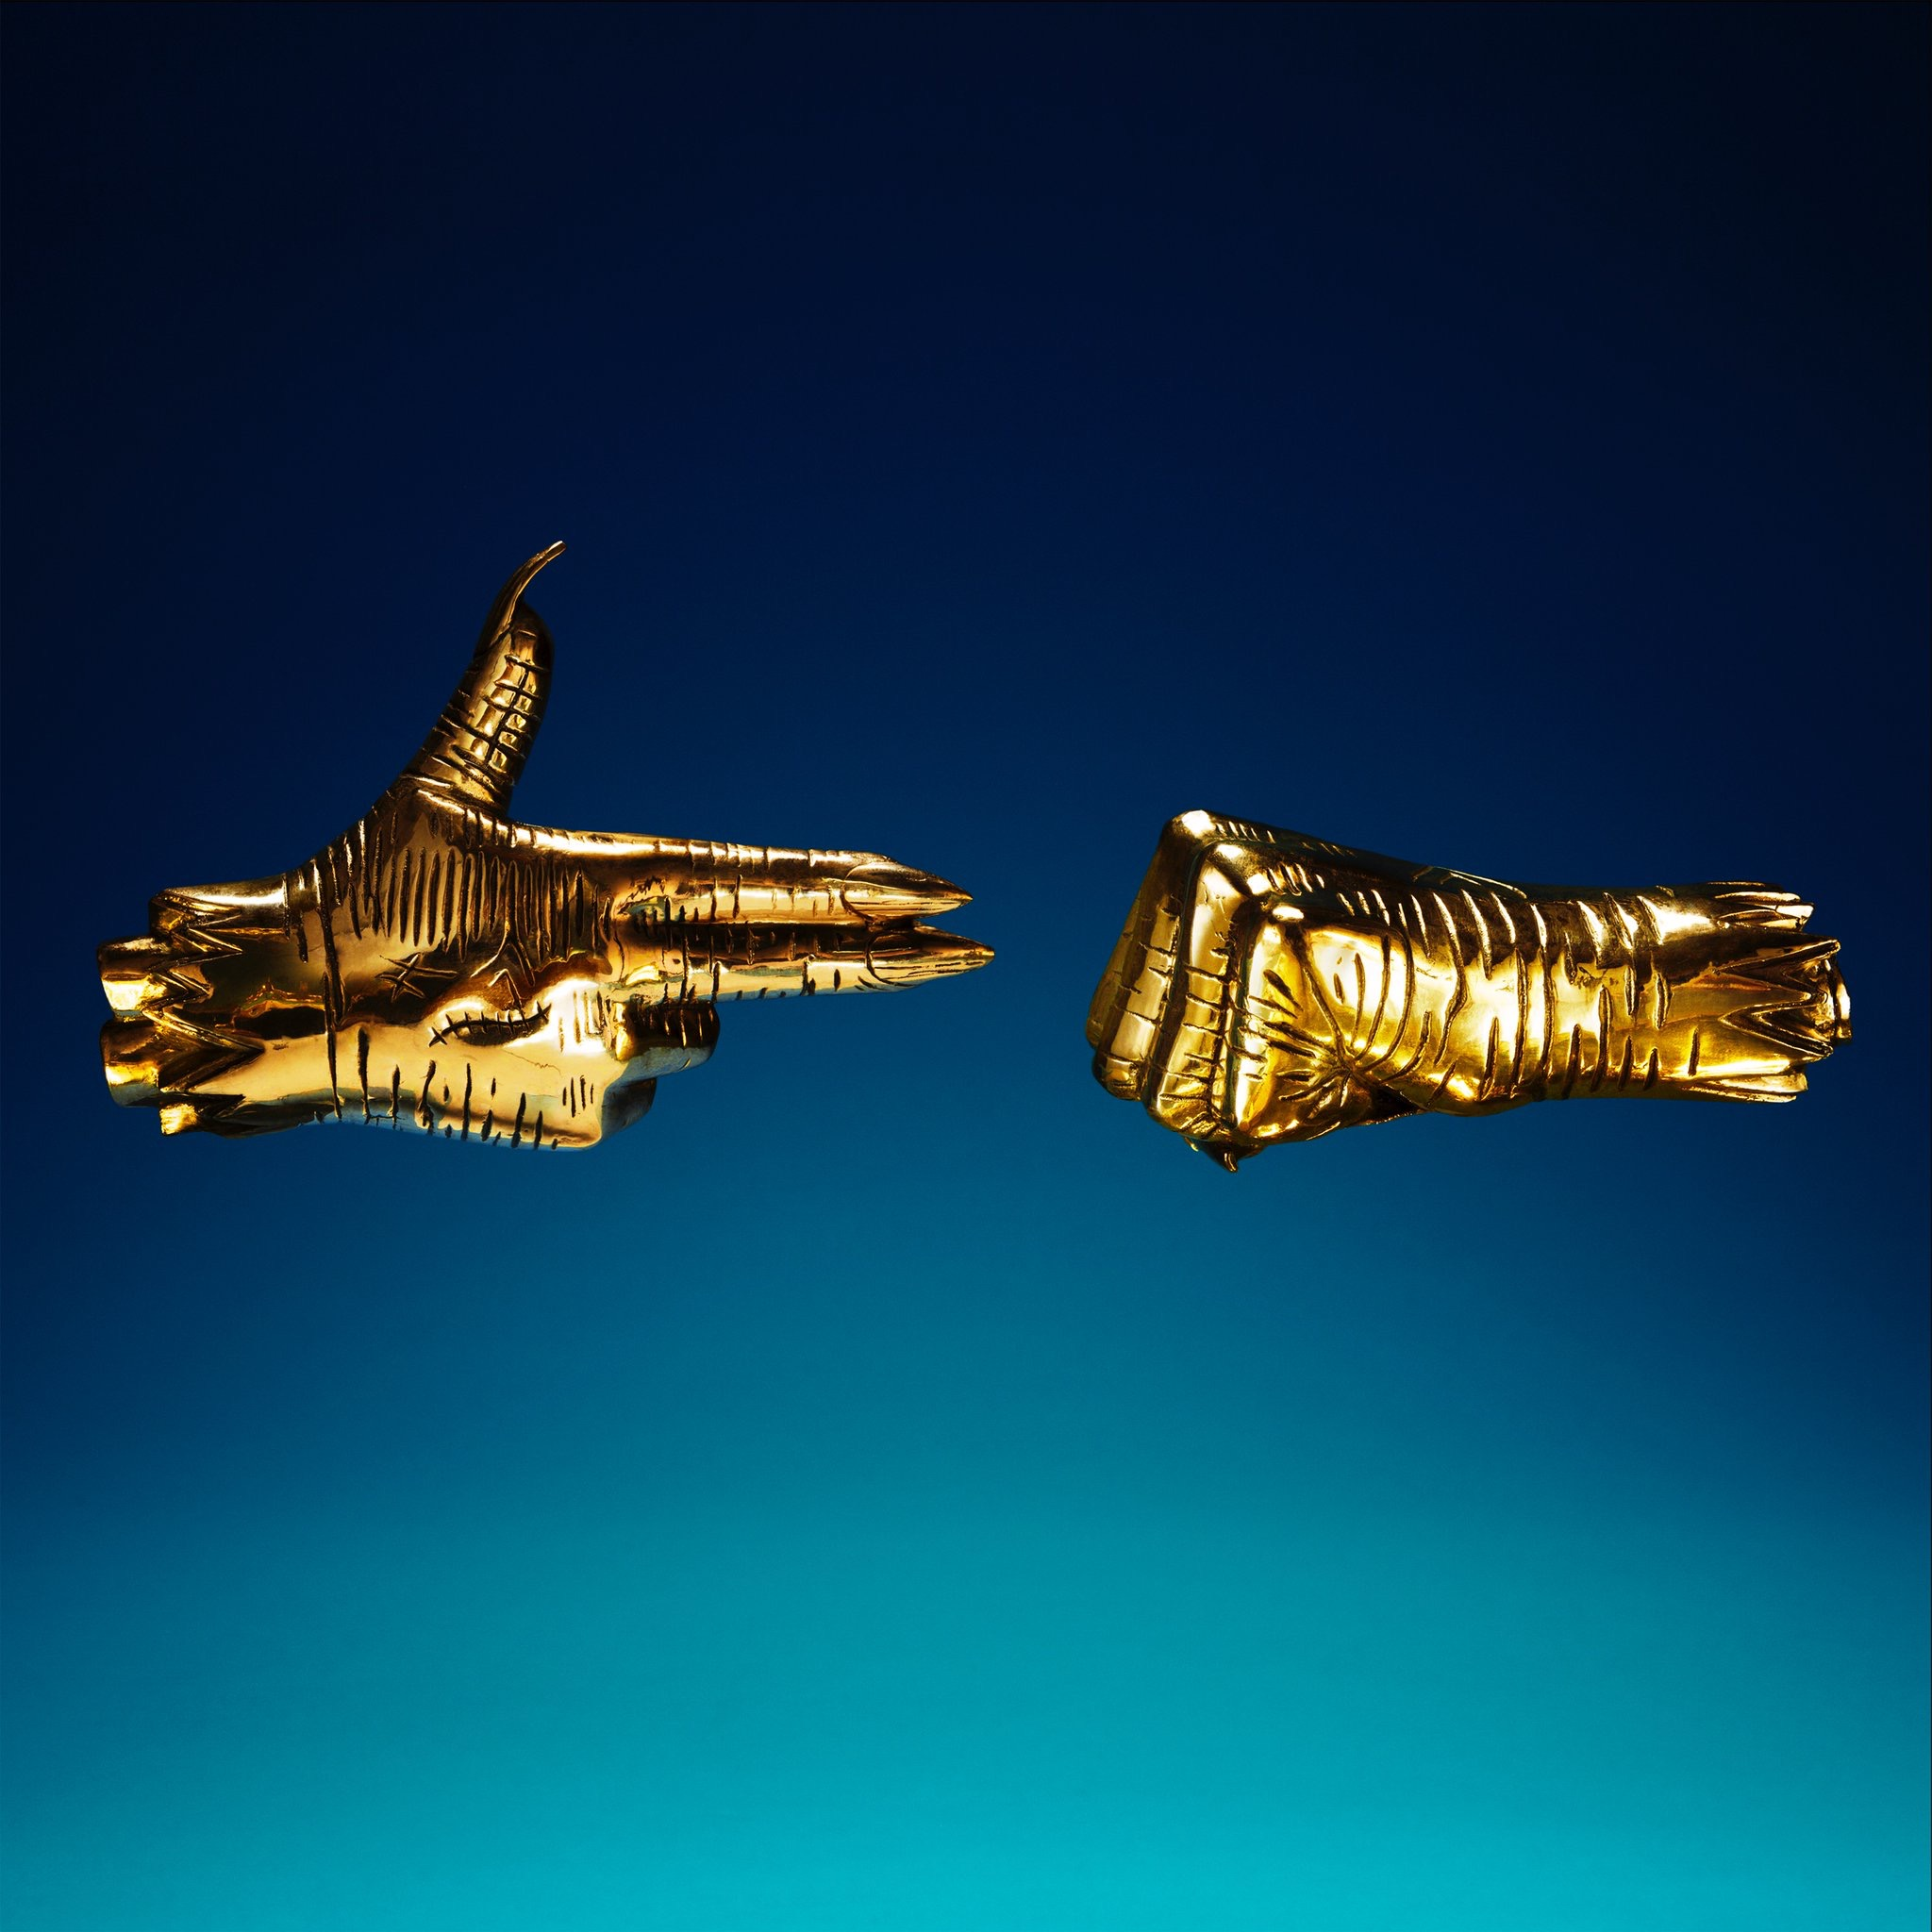 Download run the jewels rtj3 it wasnt a week ago when run the jewels announced that their third album would drop on january 13th 2017 but then a christmas fucking miracle happened malvernweather Images